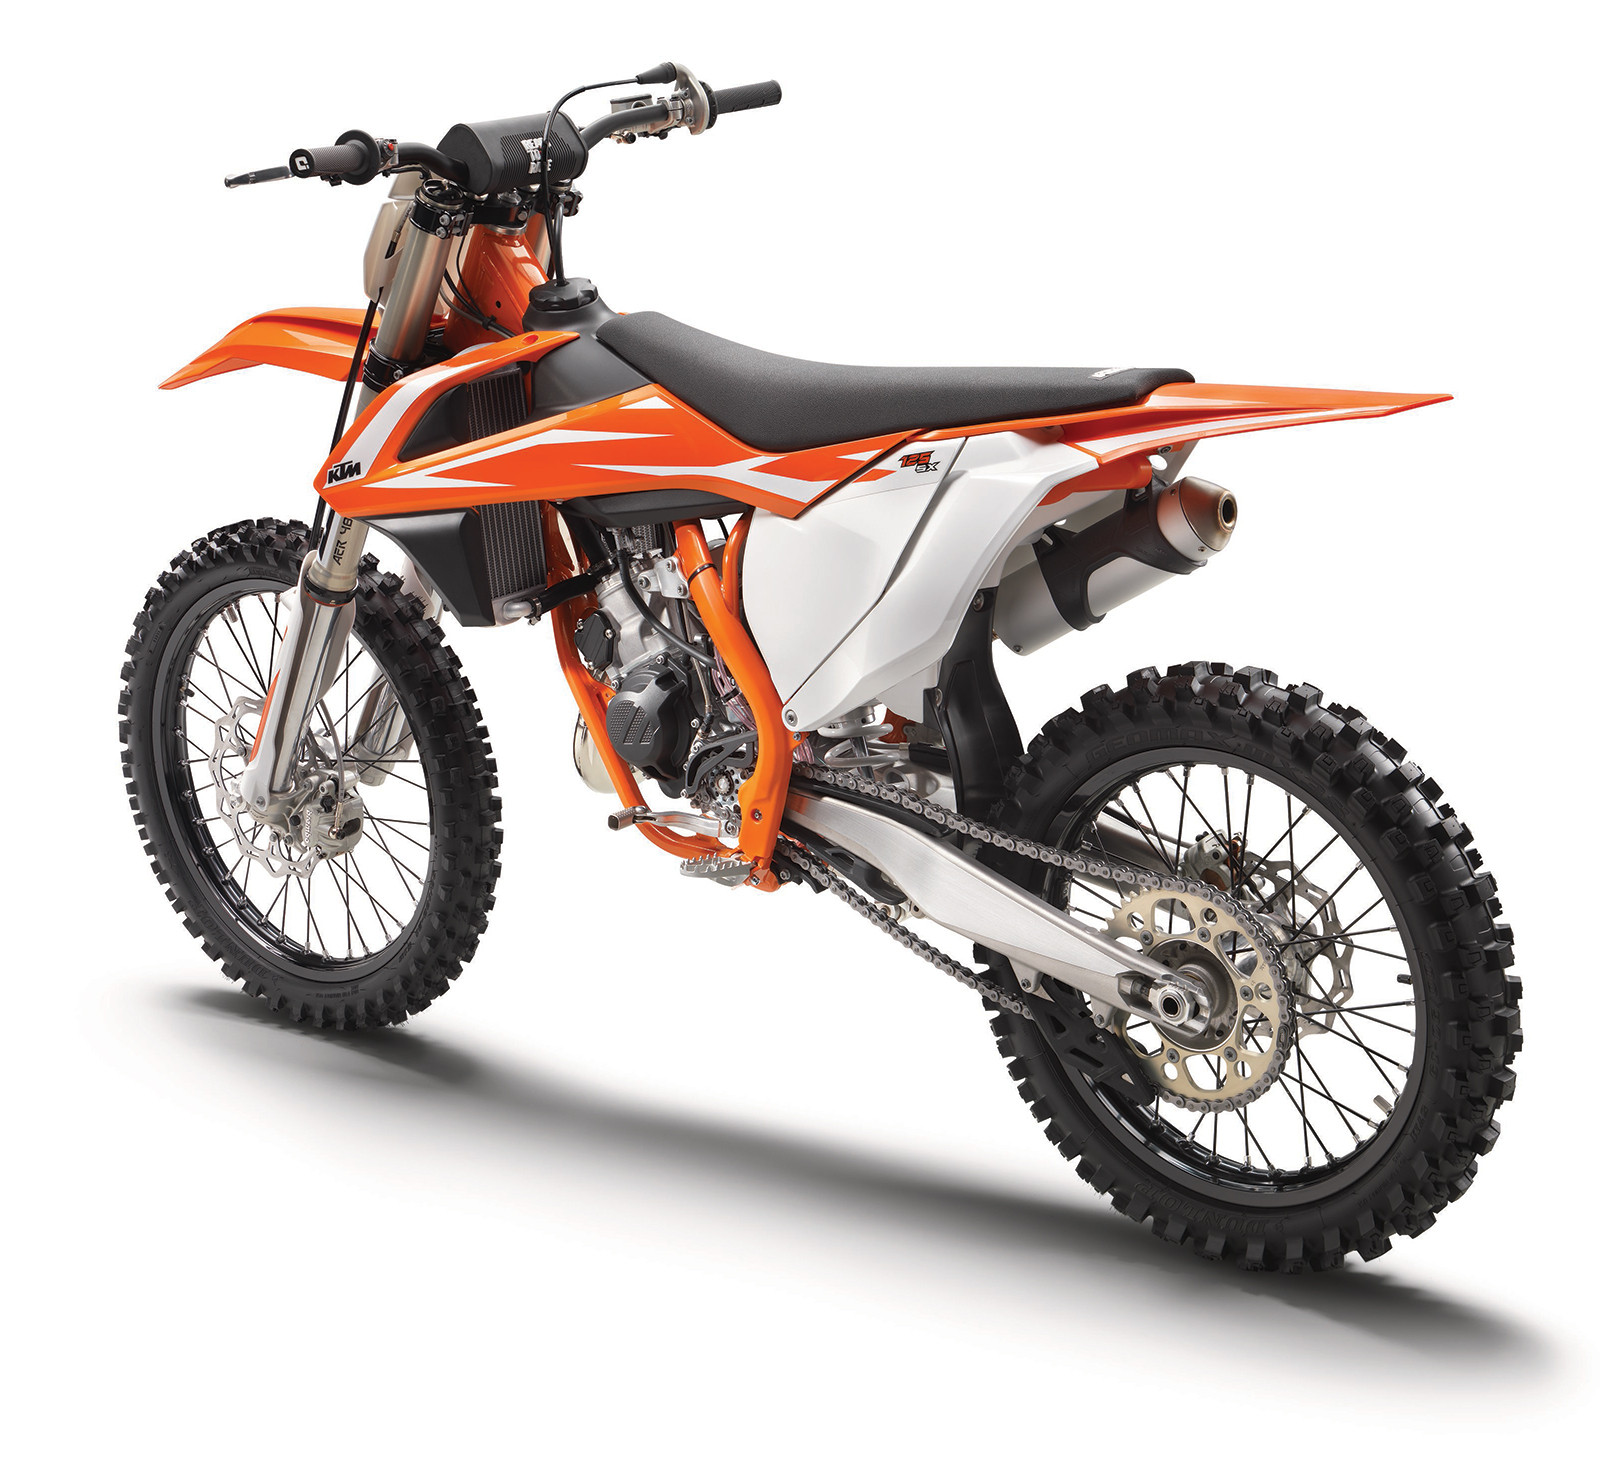 2018 ktm 125 sx. simple 125 2018 ktm 125 sx on ktm sx vital mx